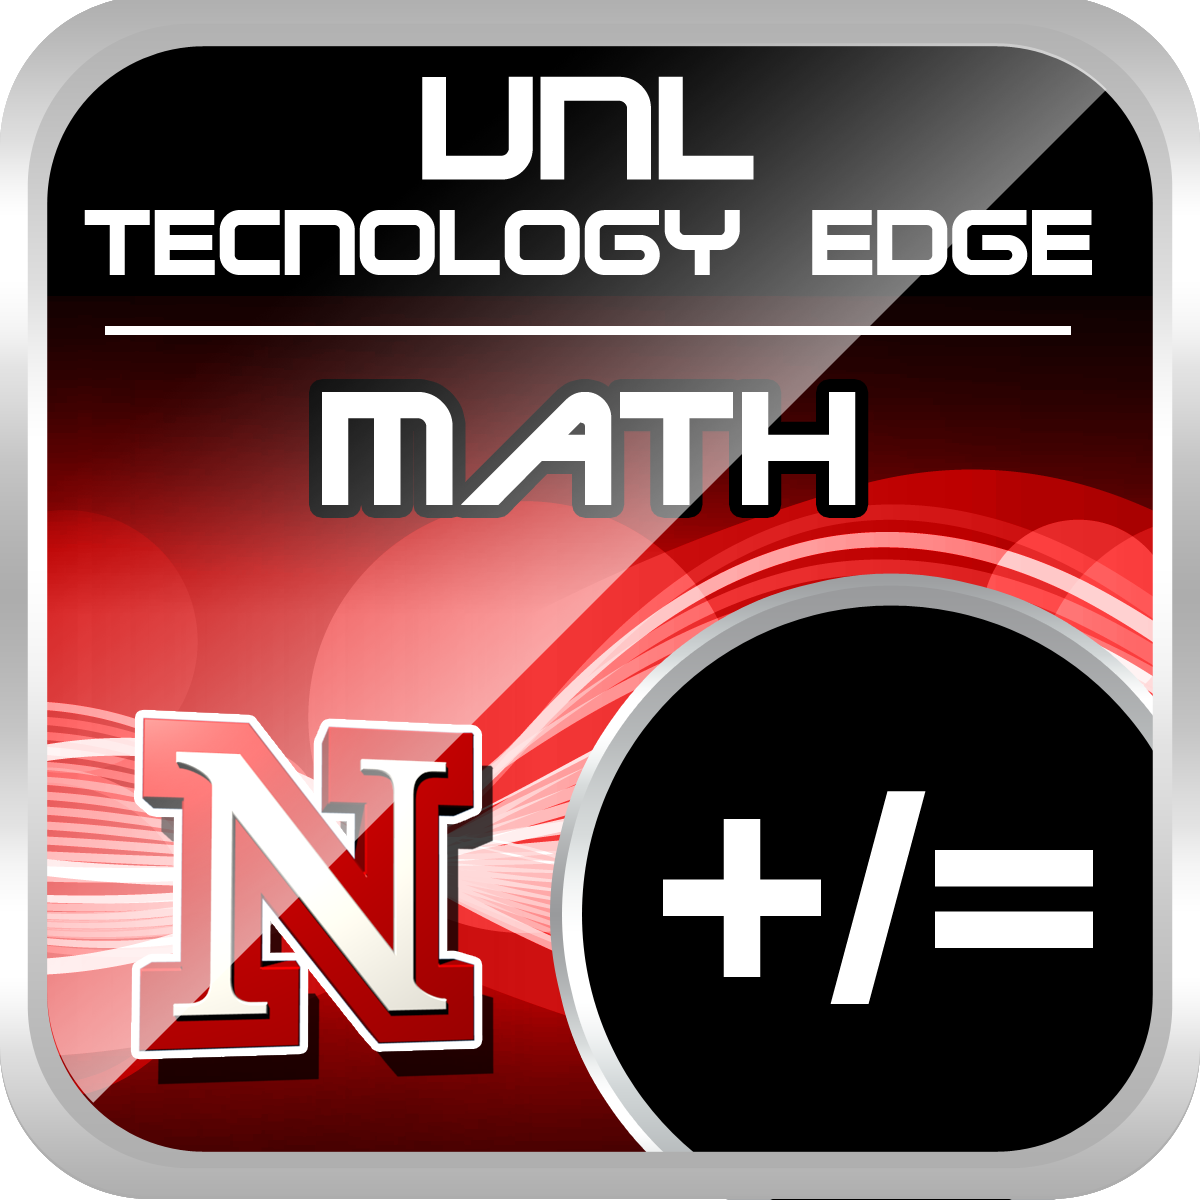 Tech EDGE - Math Image